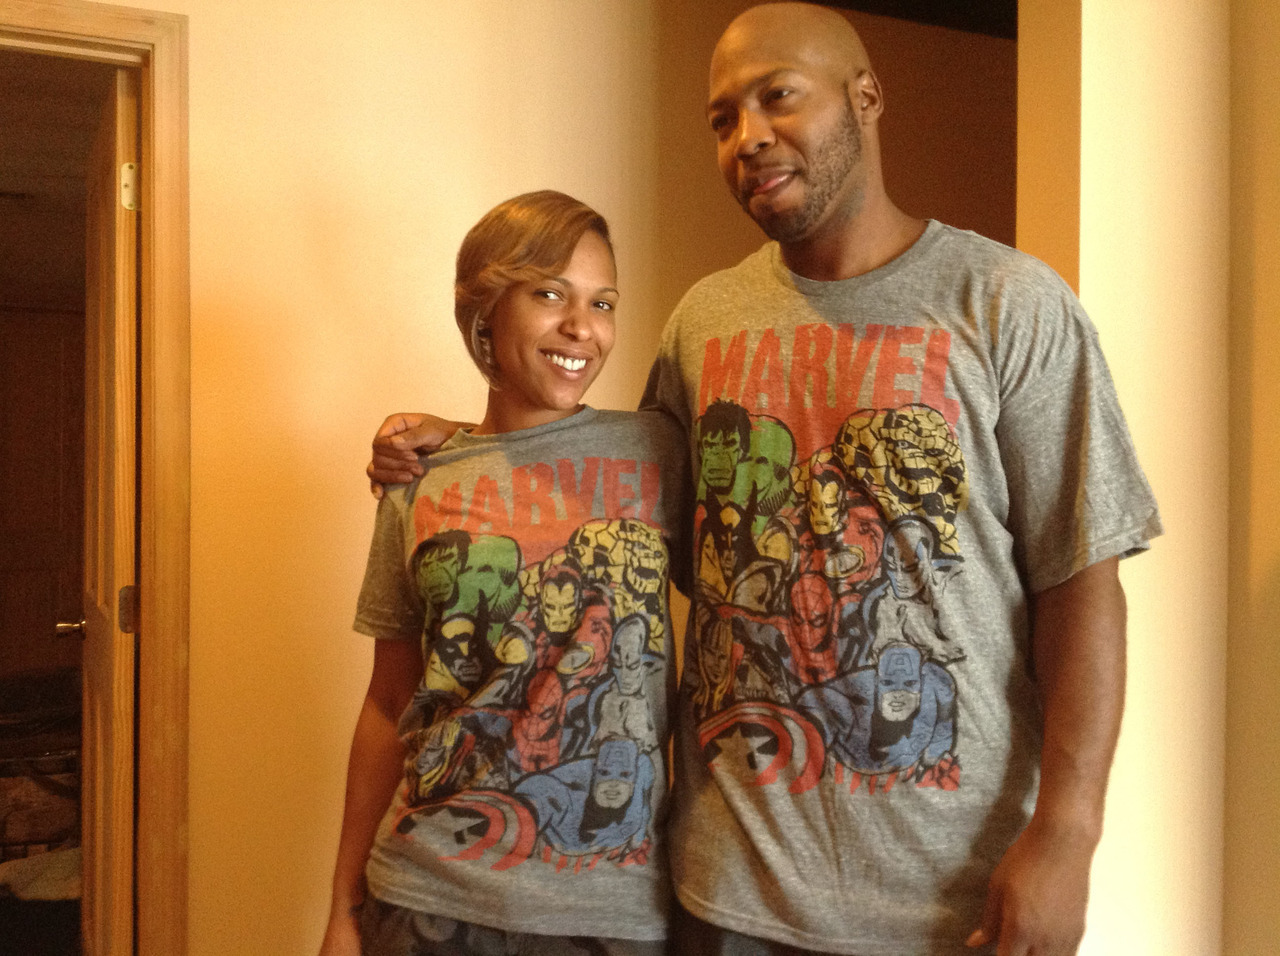 Thanks @cuzzophly & @houstonhairgoddess #marvel tees